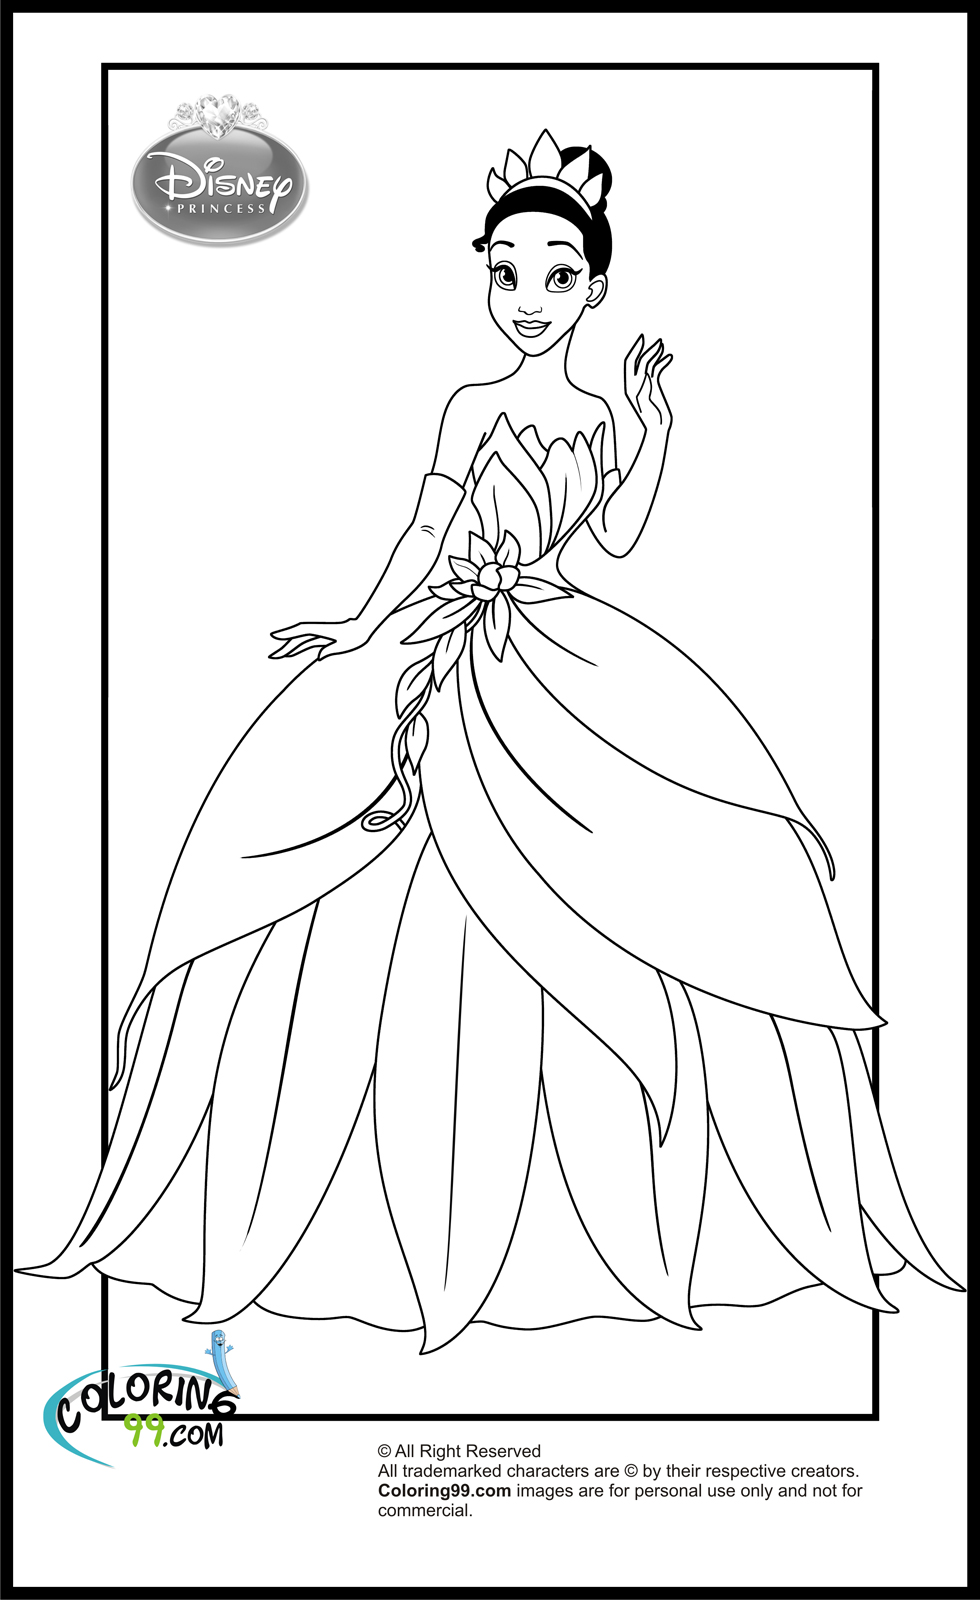 colouring pages for disney princesses bauzinho da web baÚ da web desenhos e riscos das for disney princesses colouring pages